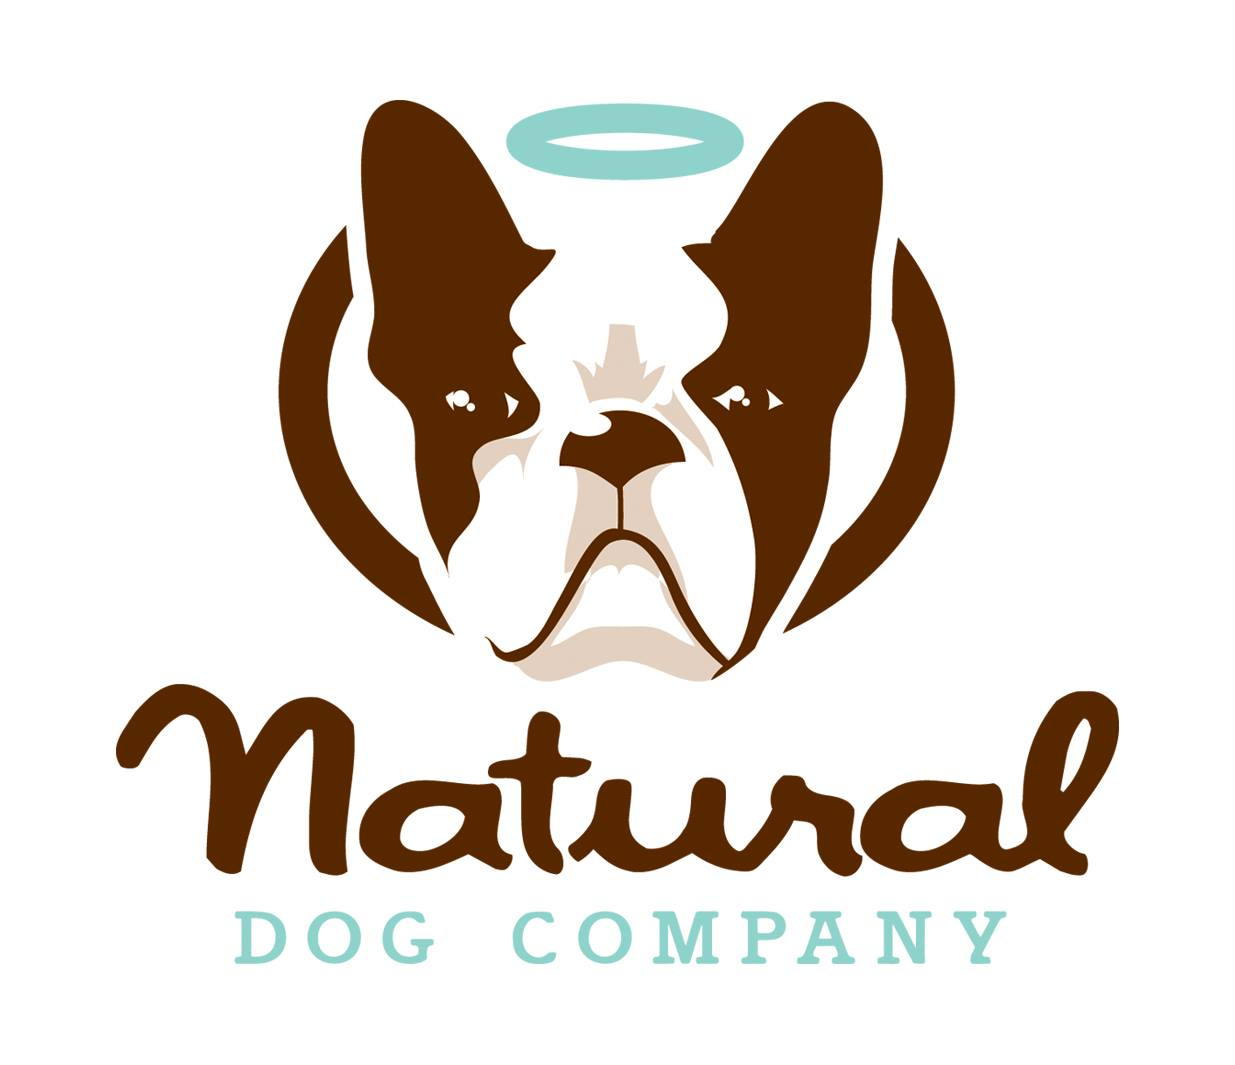 The Natural Dog Company